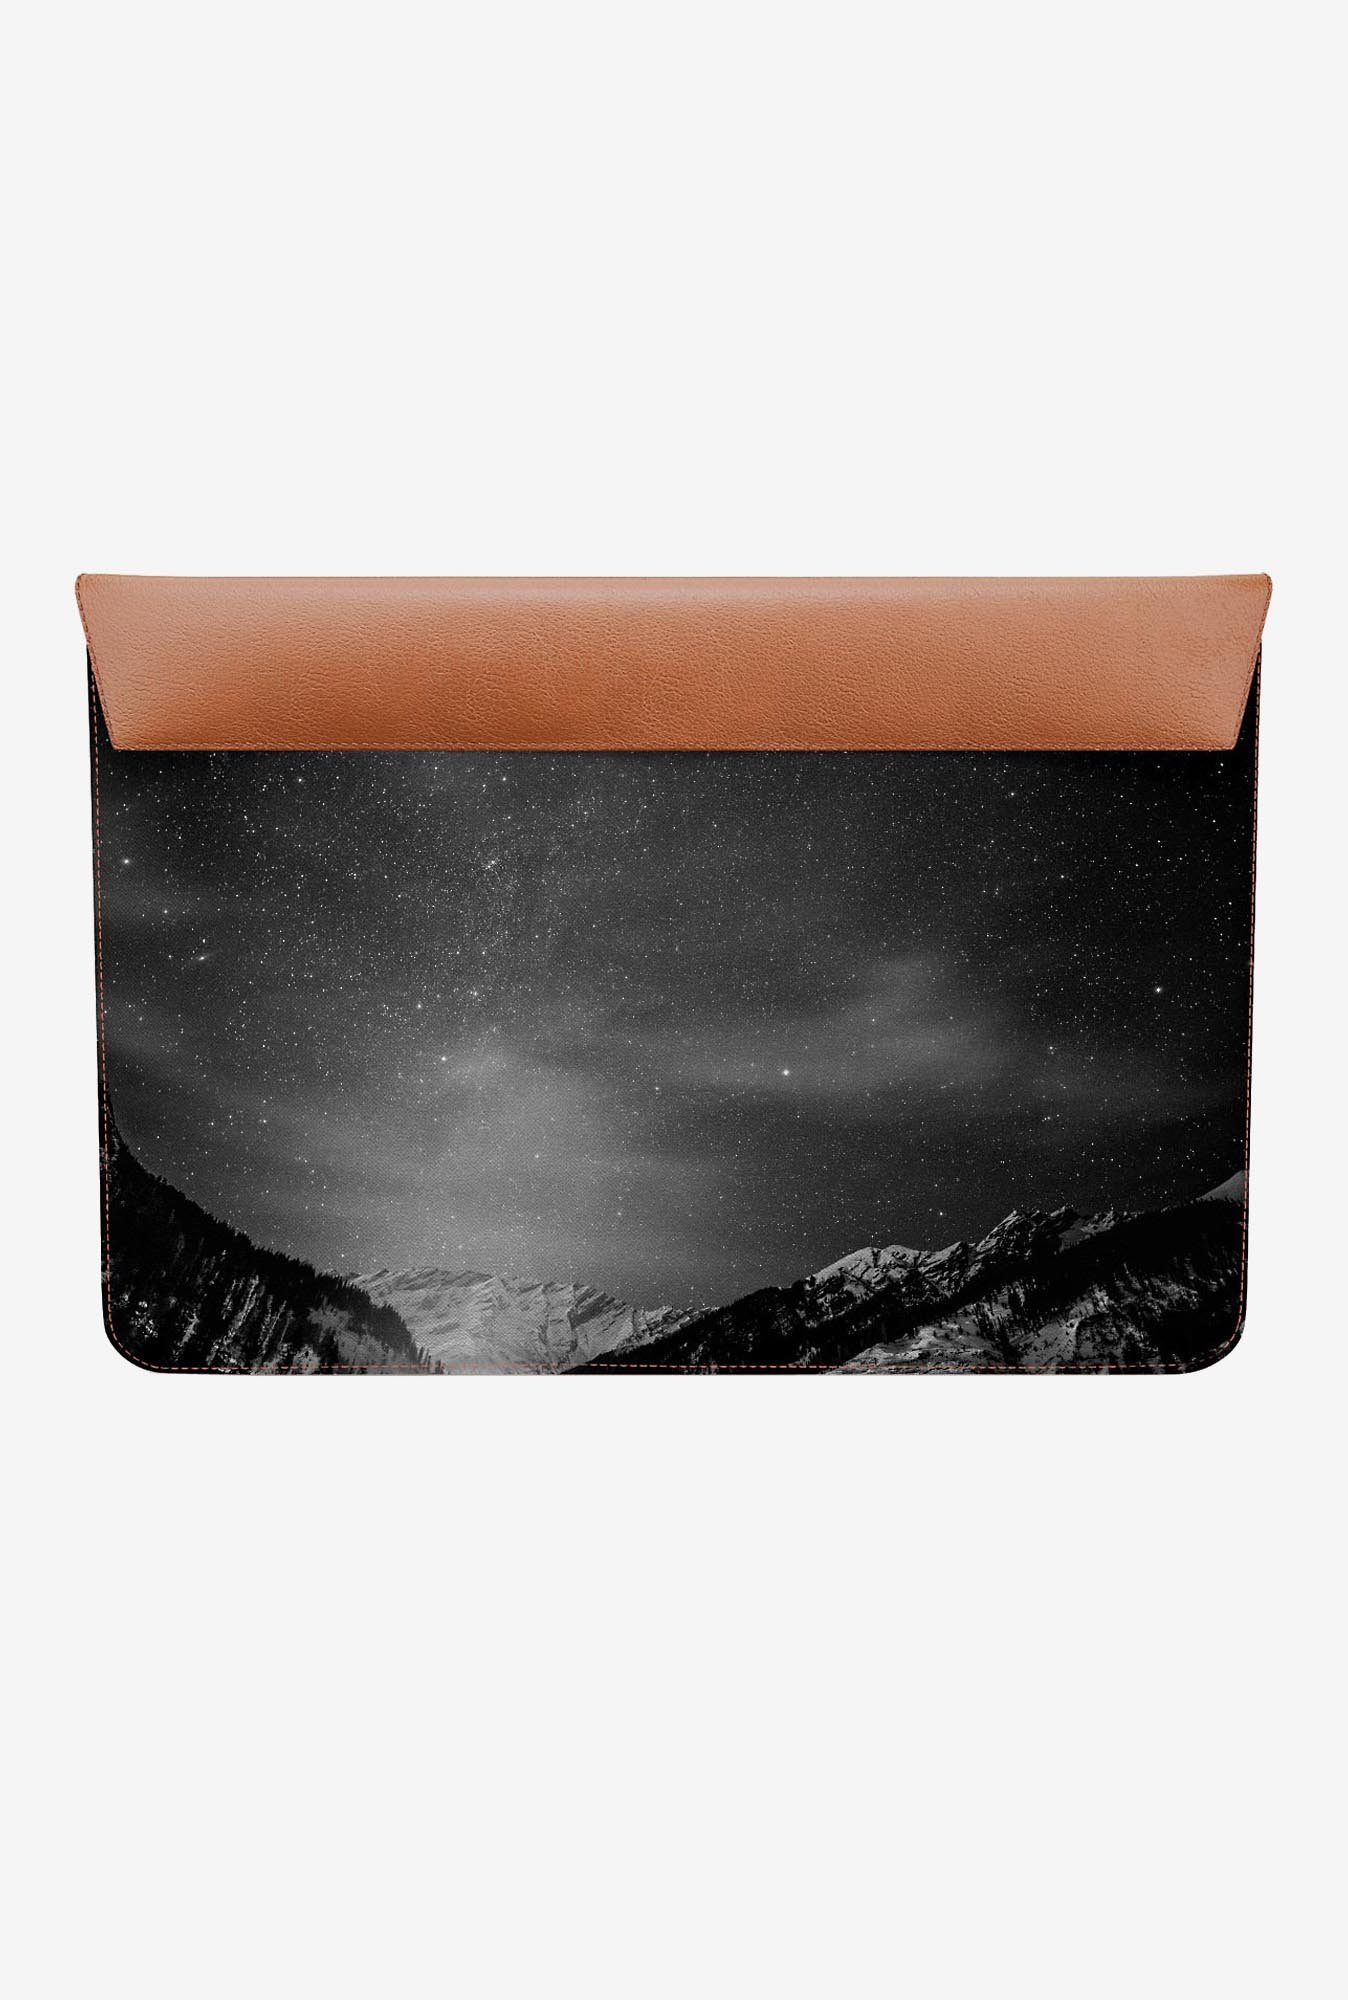 DailyObjects Black White MacBook Pro 15 Envelope Sleeve